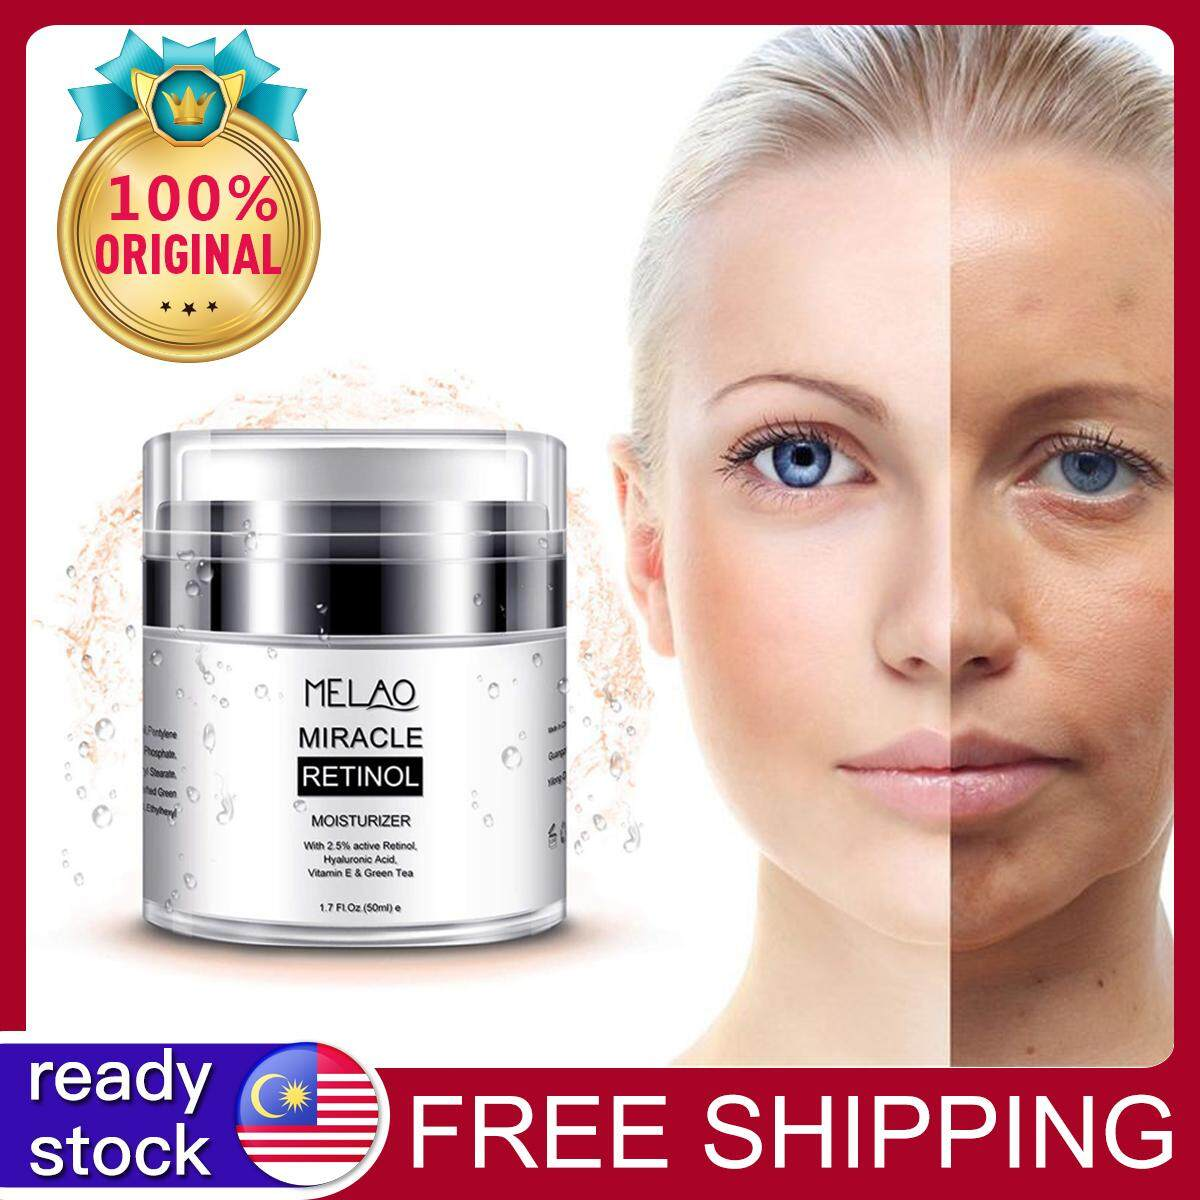 Melao Retinol 2.5% Moisturizer Cream Anti Aging And Reduces Wrinkles And Fine Lines Day And Night Retinol Cream Beauty Nightcream By Encounter.